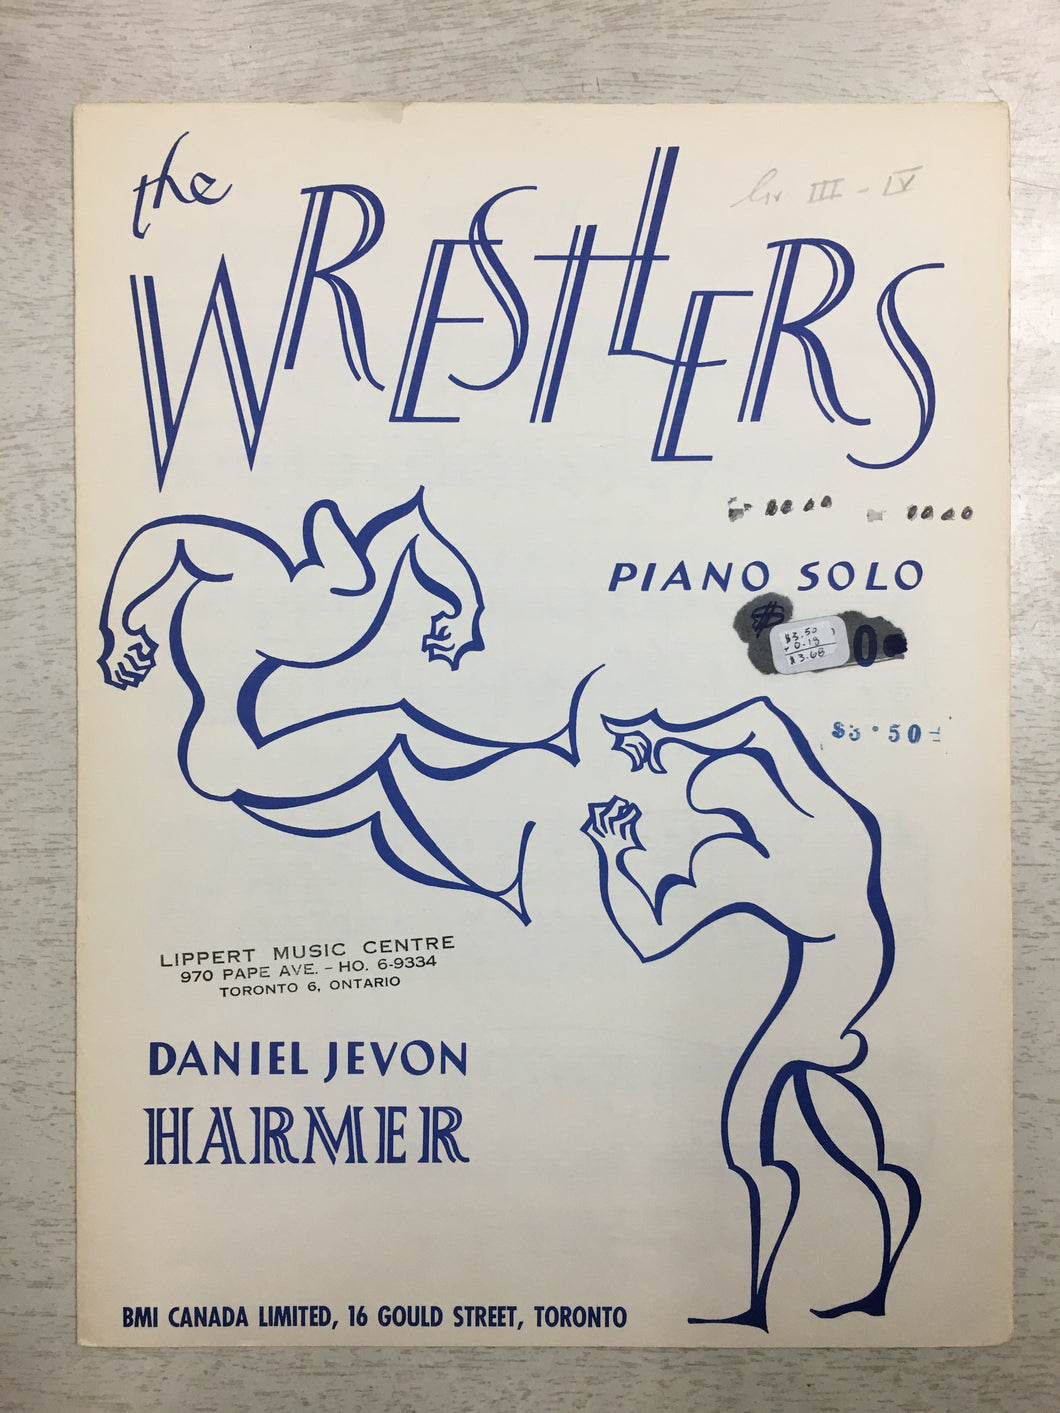 The Wrestlers, Daniel Jevon Harmer